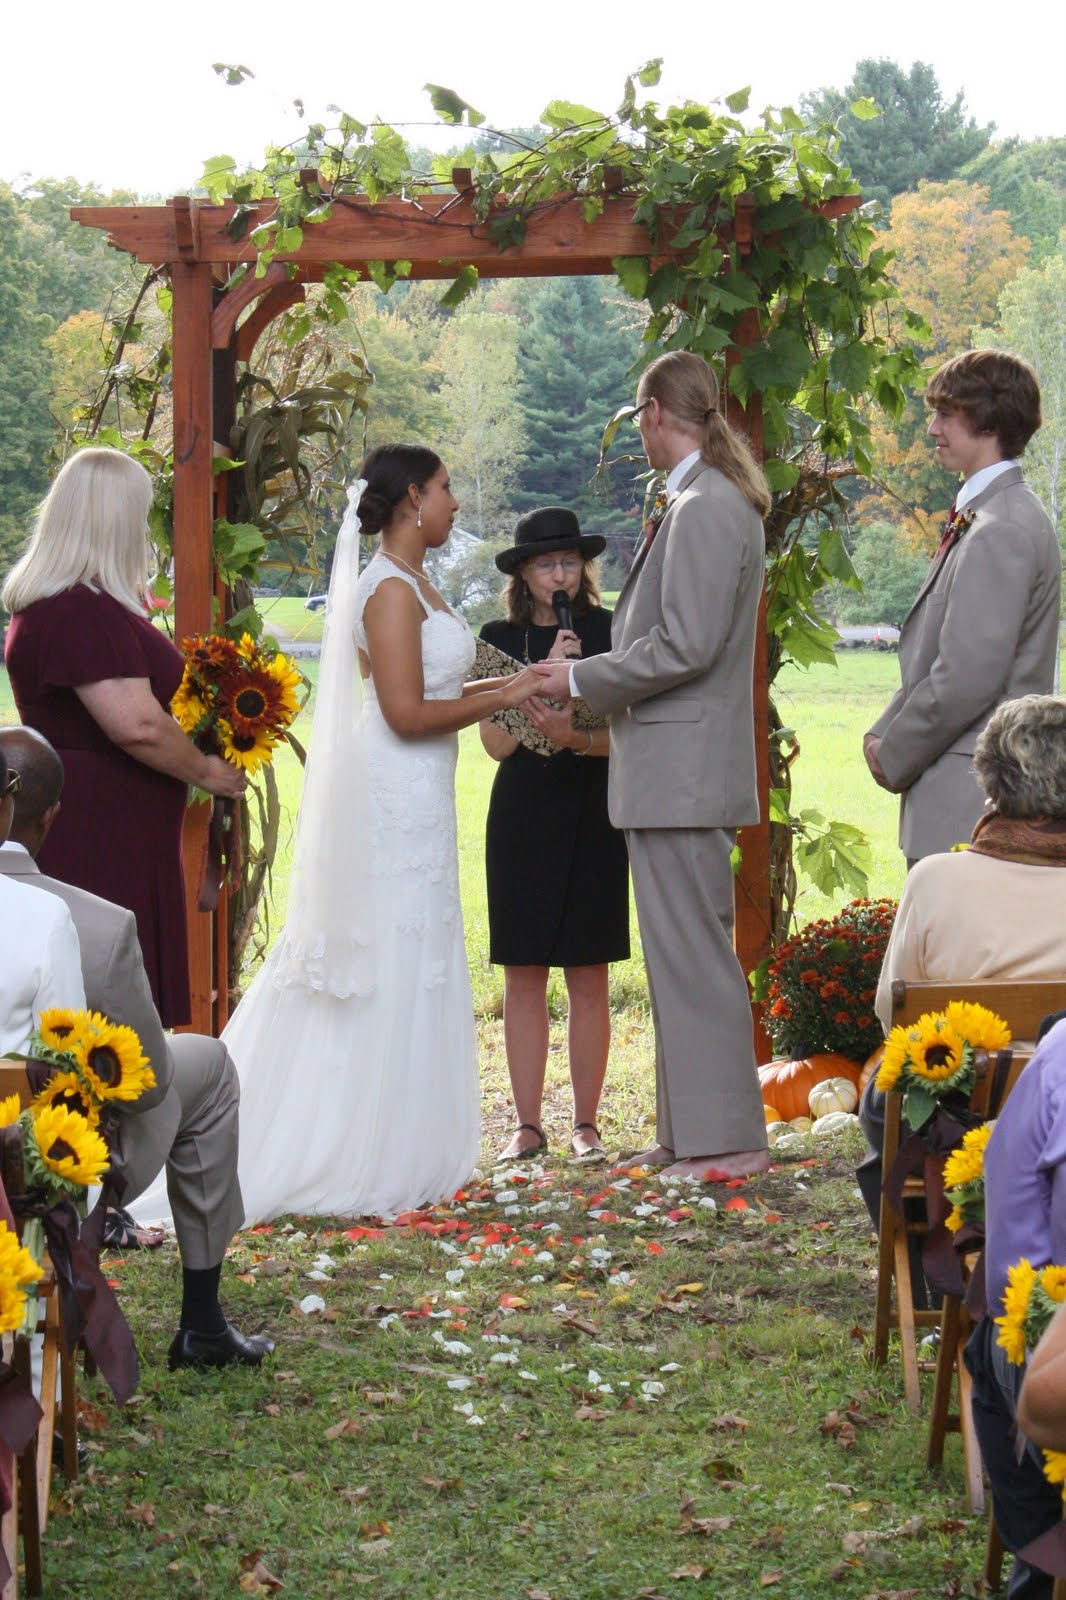 AnitaWeds: Outdoor Weddings: Connecting With Nature